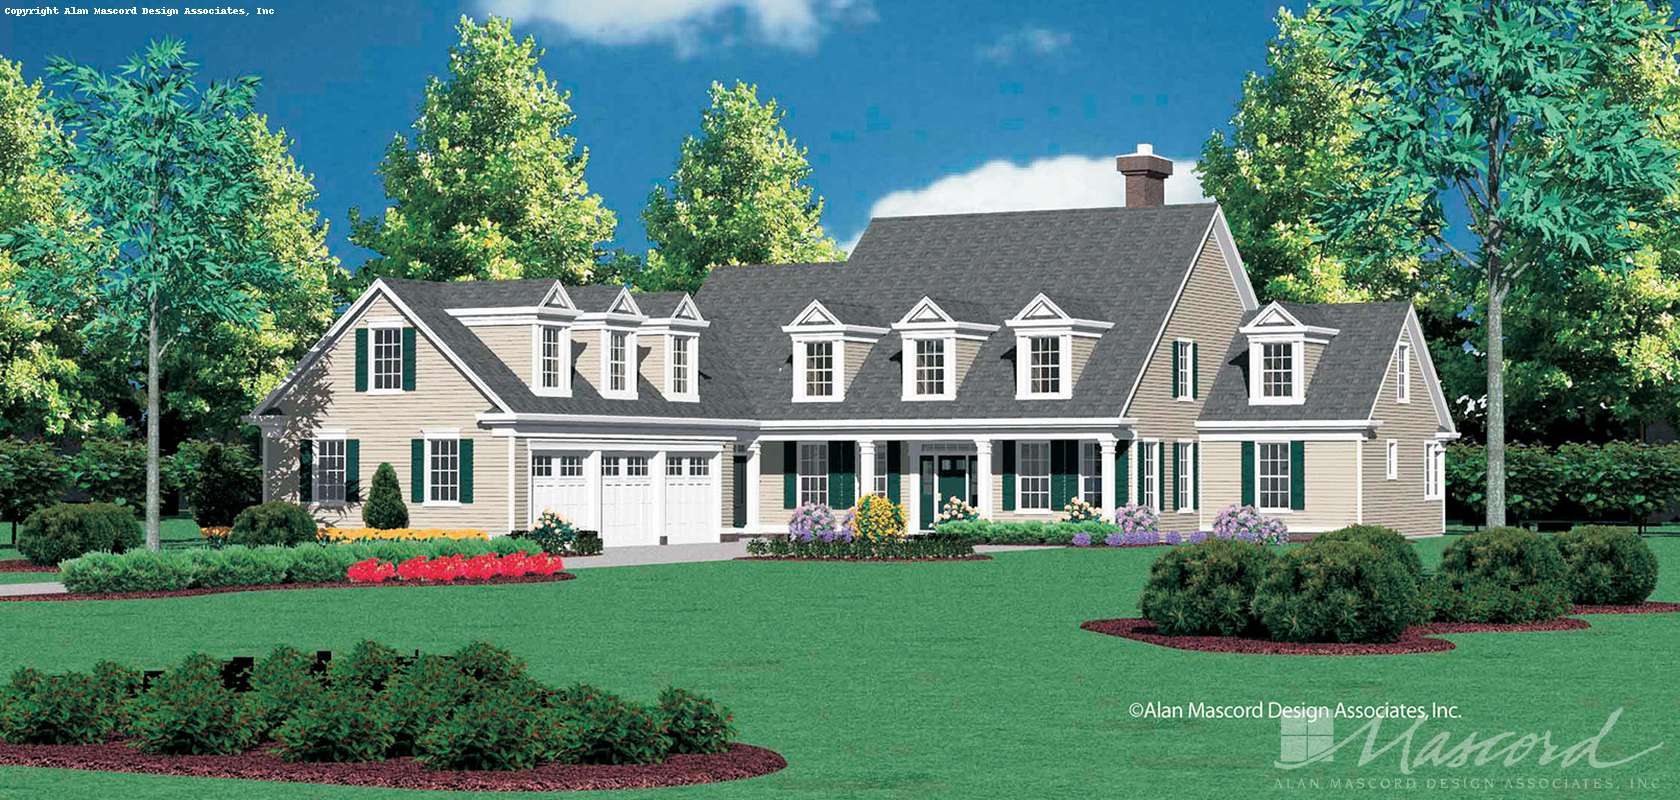 Mascord House Plan 2359: The Aldenham